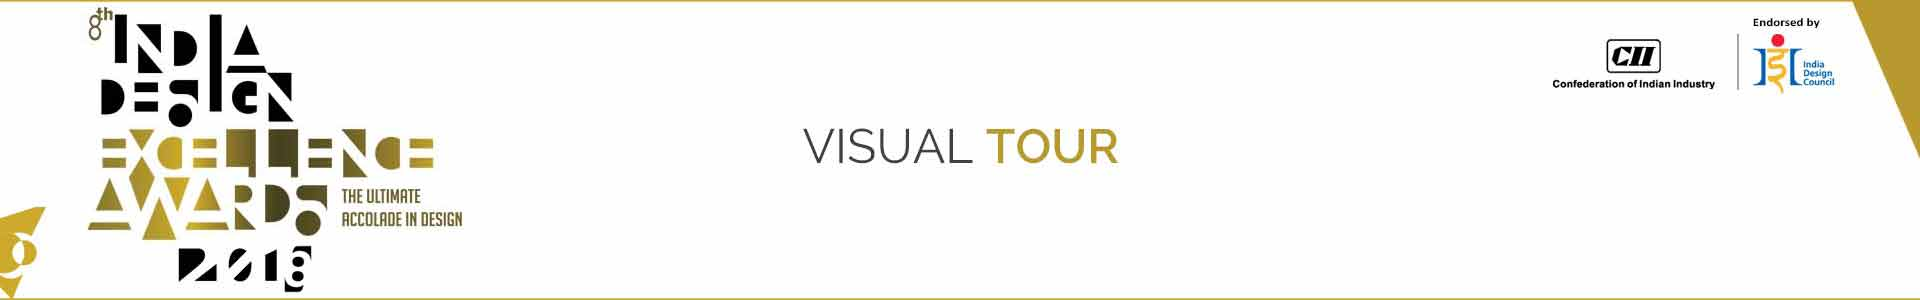 excellence-awards-visual-tour